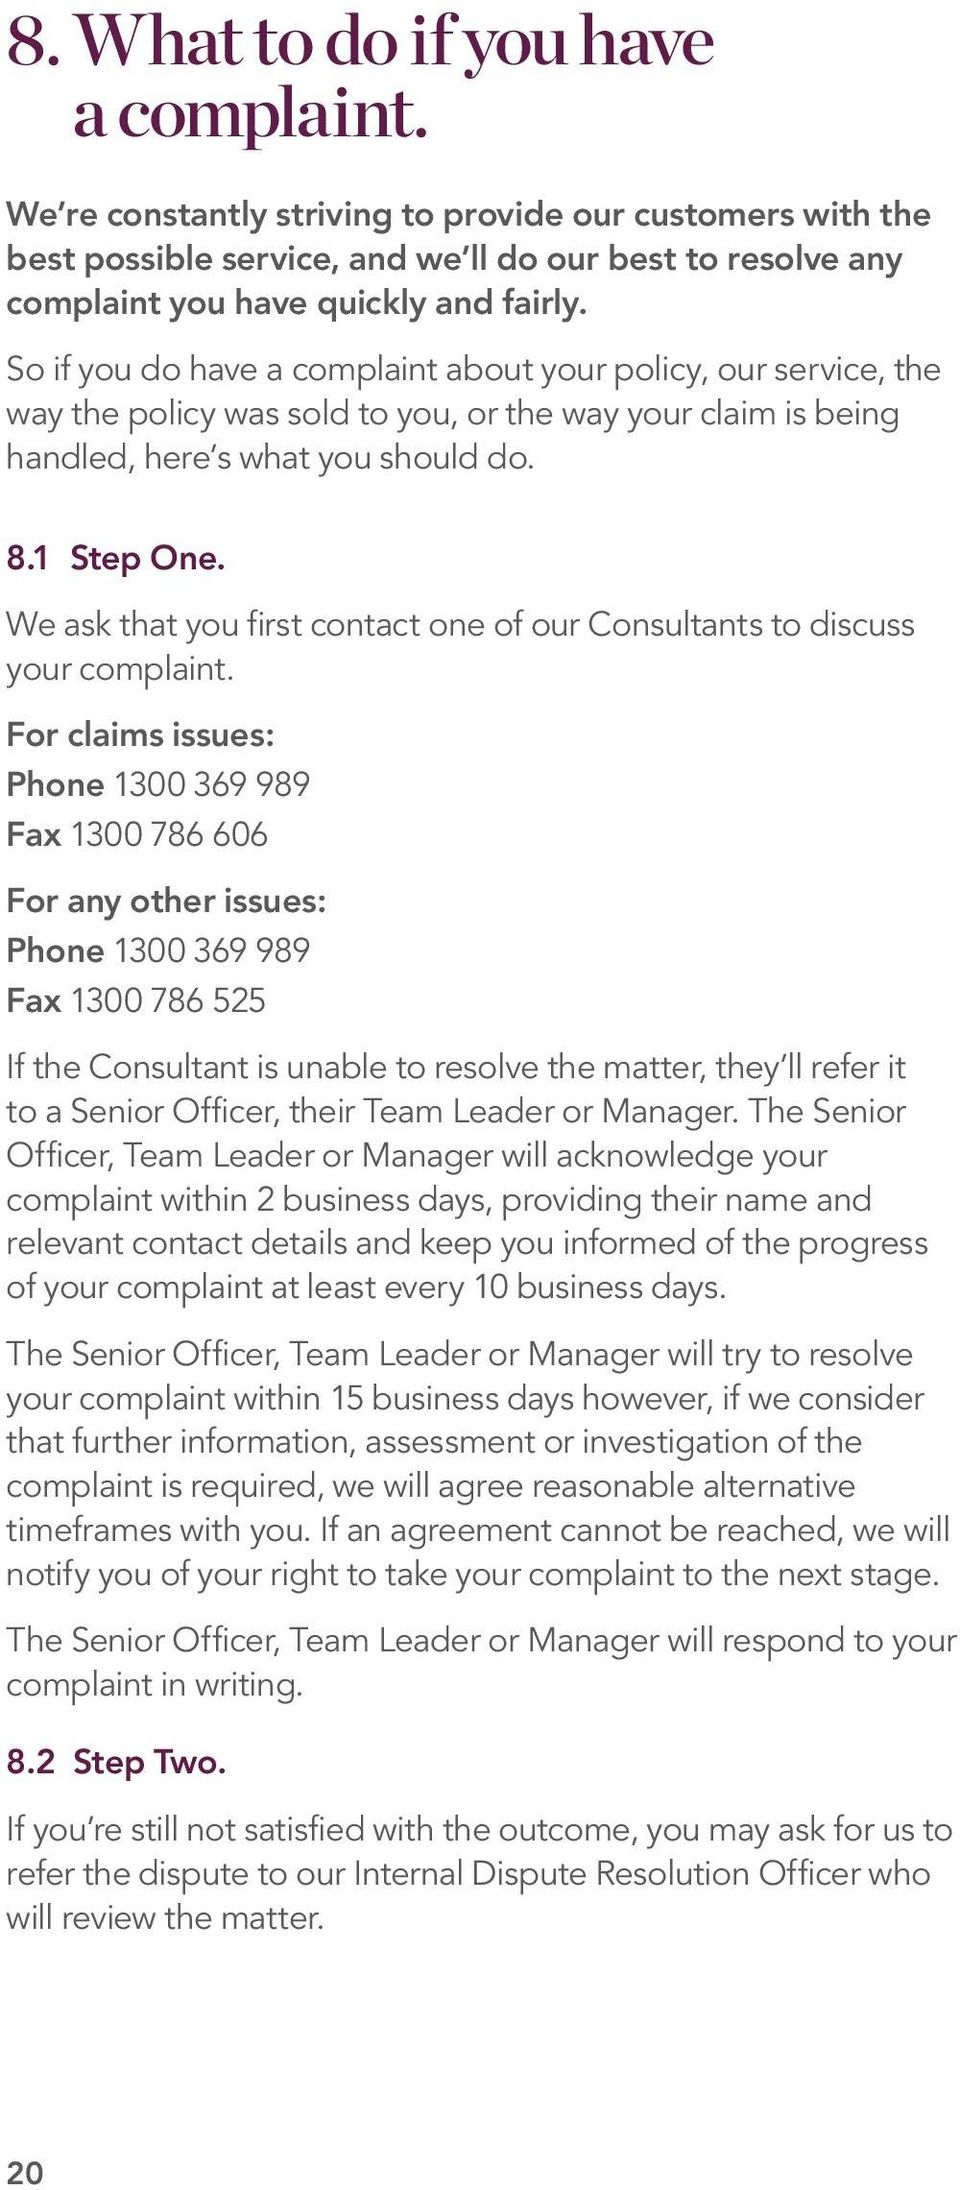 We ask that you first contact one of our Consultants to discuss your complaint.